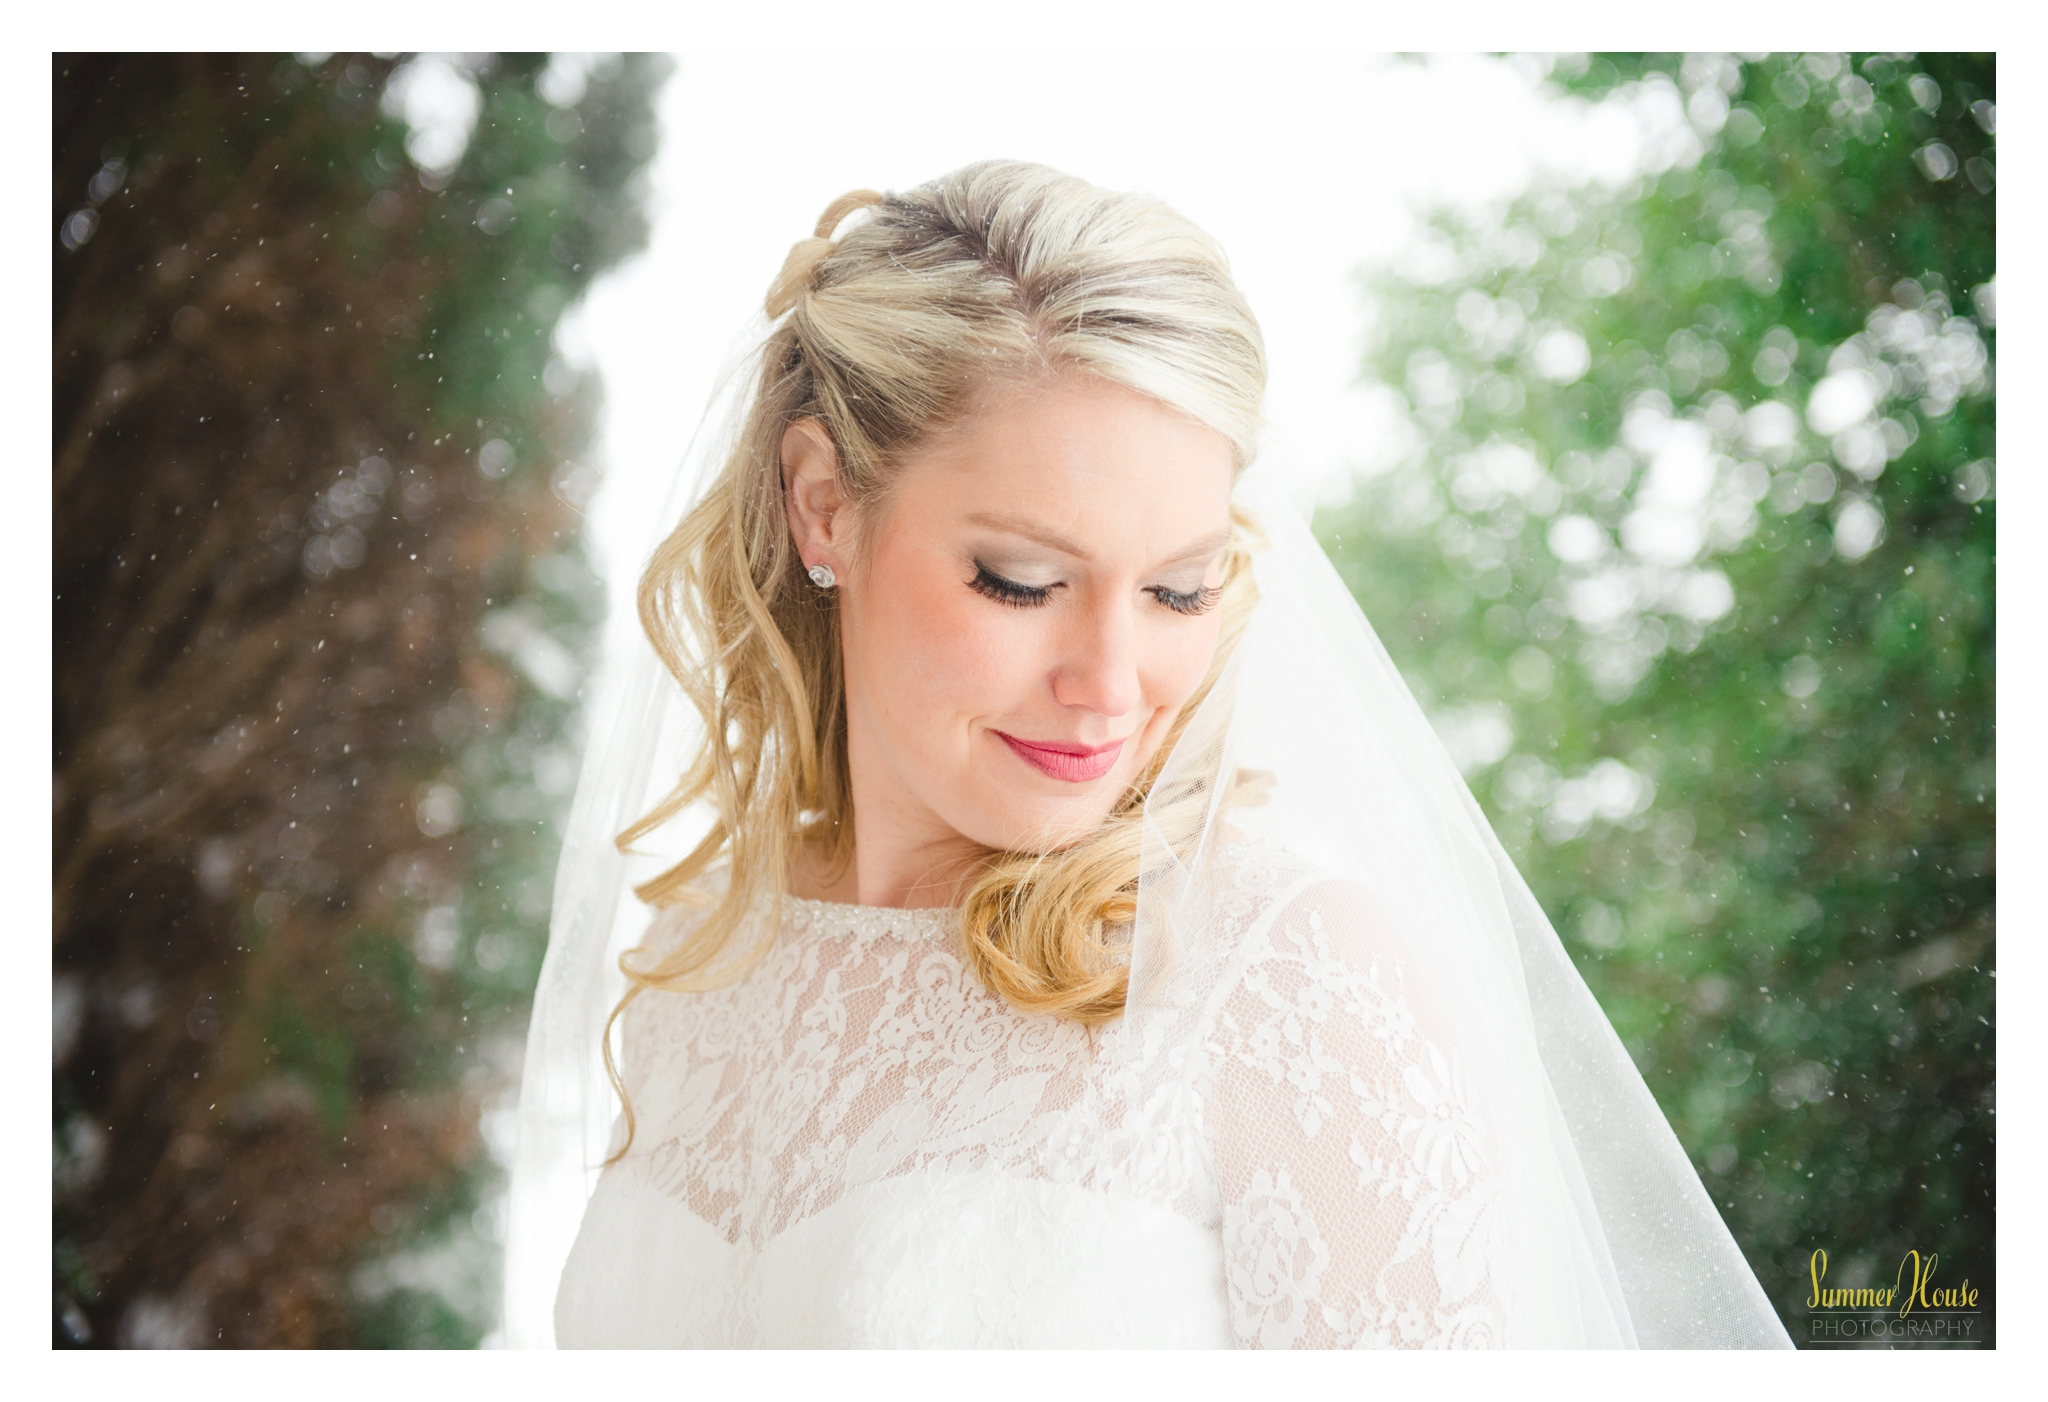 winter bride maryland estate wedding